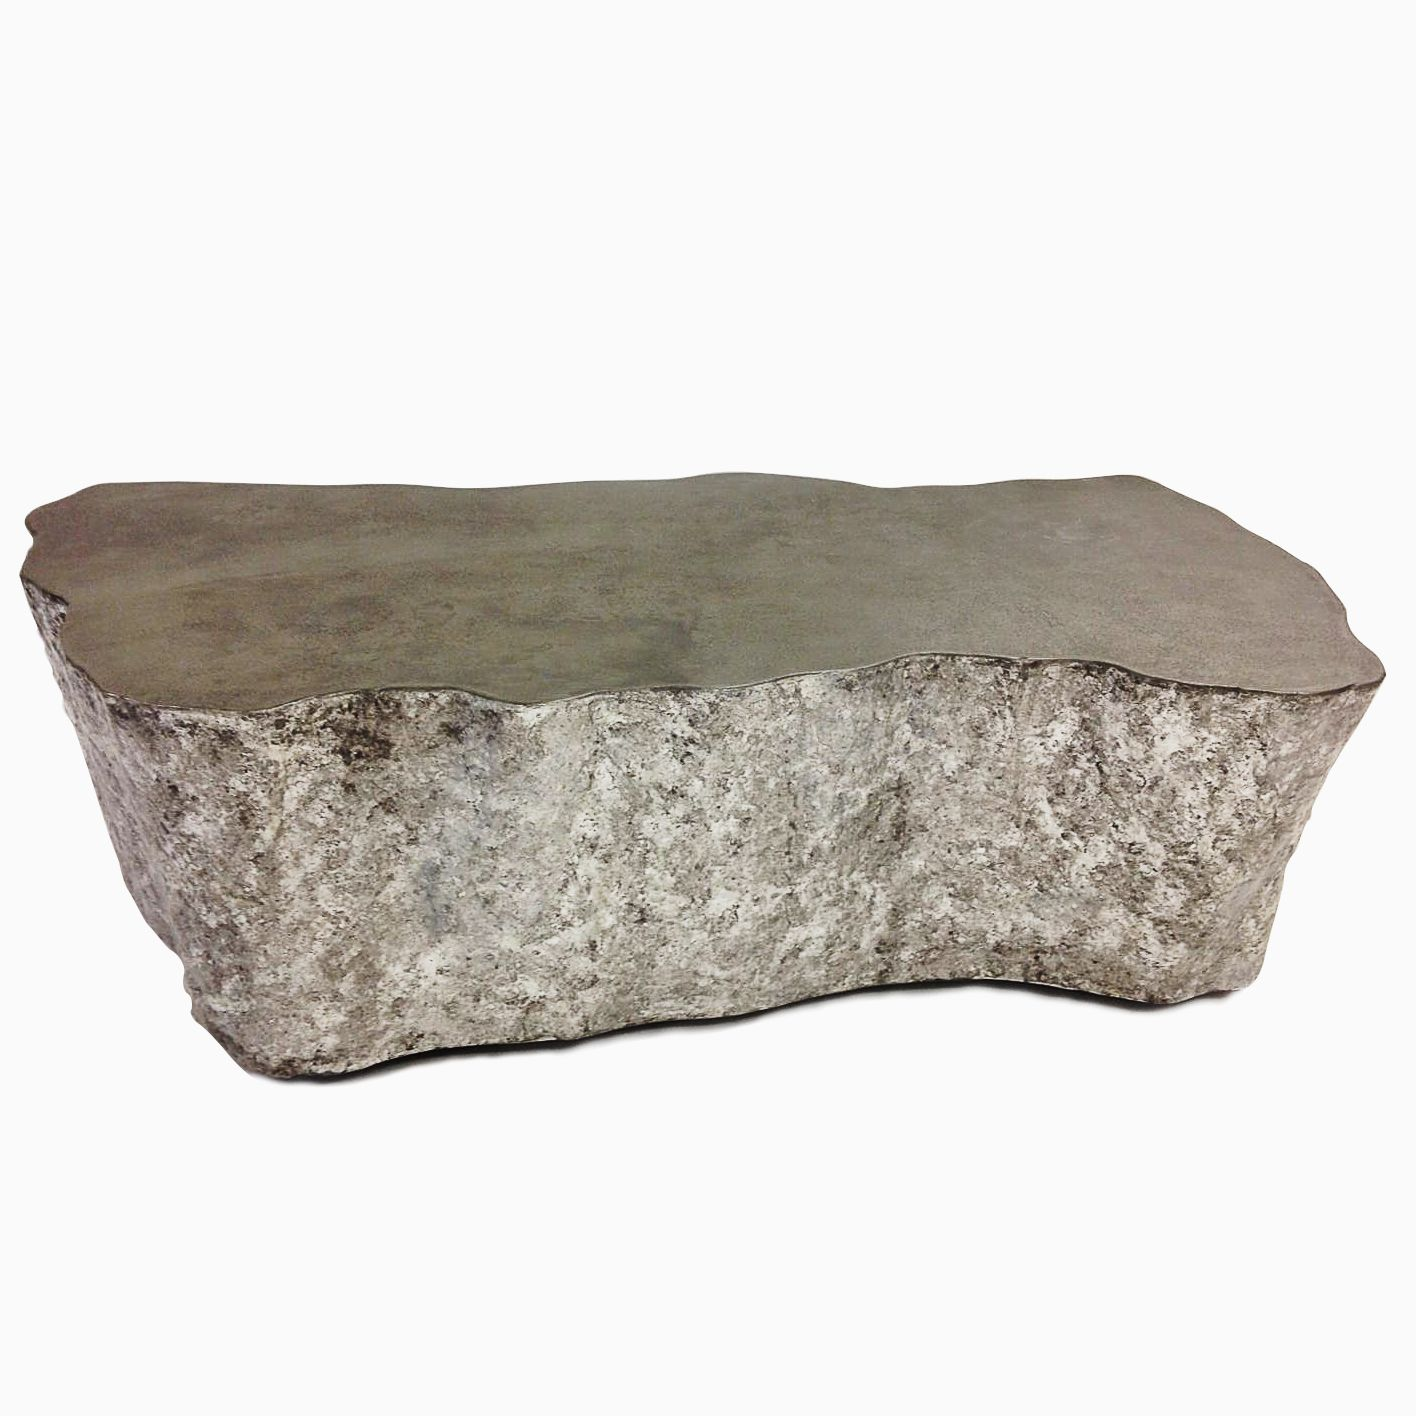 Custom Made Concrete And Silver Leaf Coffee Table by 910 Castings | CustomMade.com